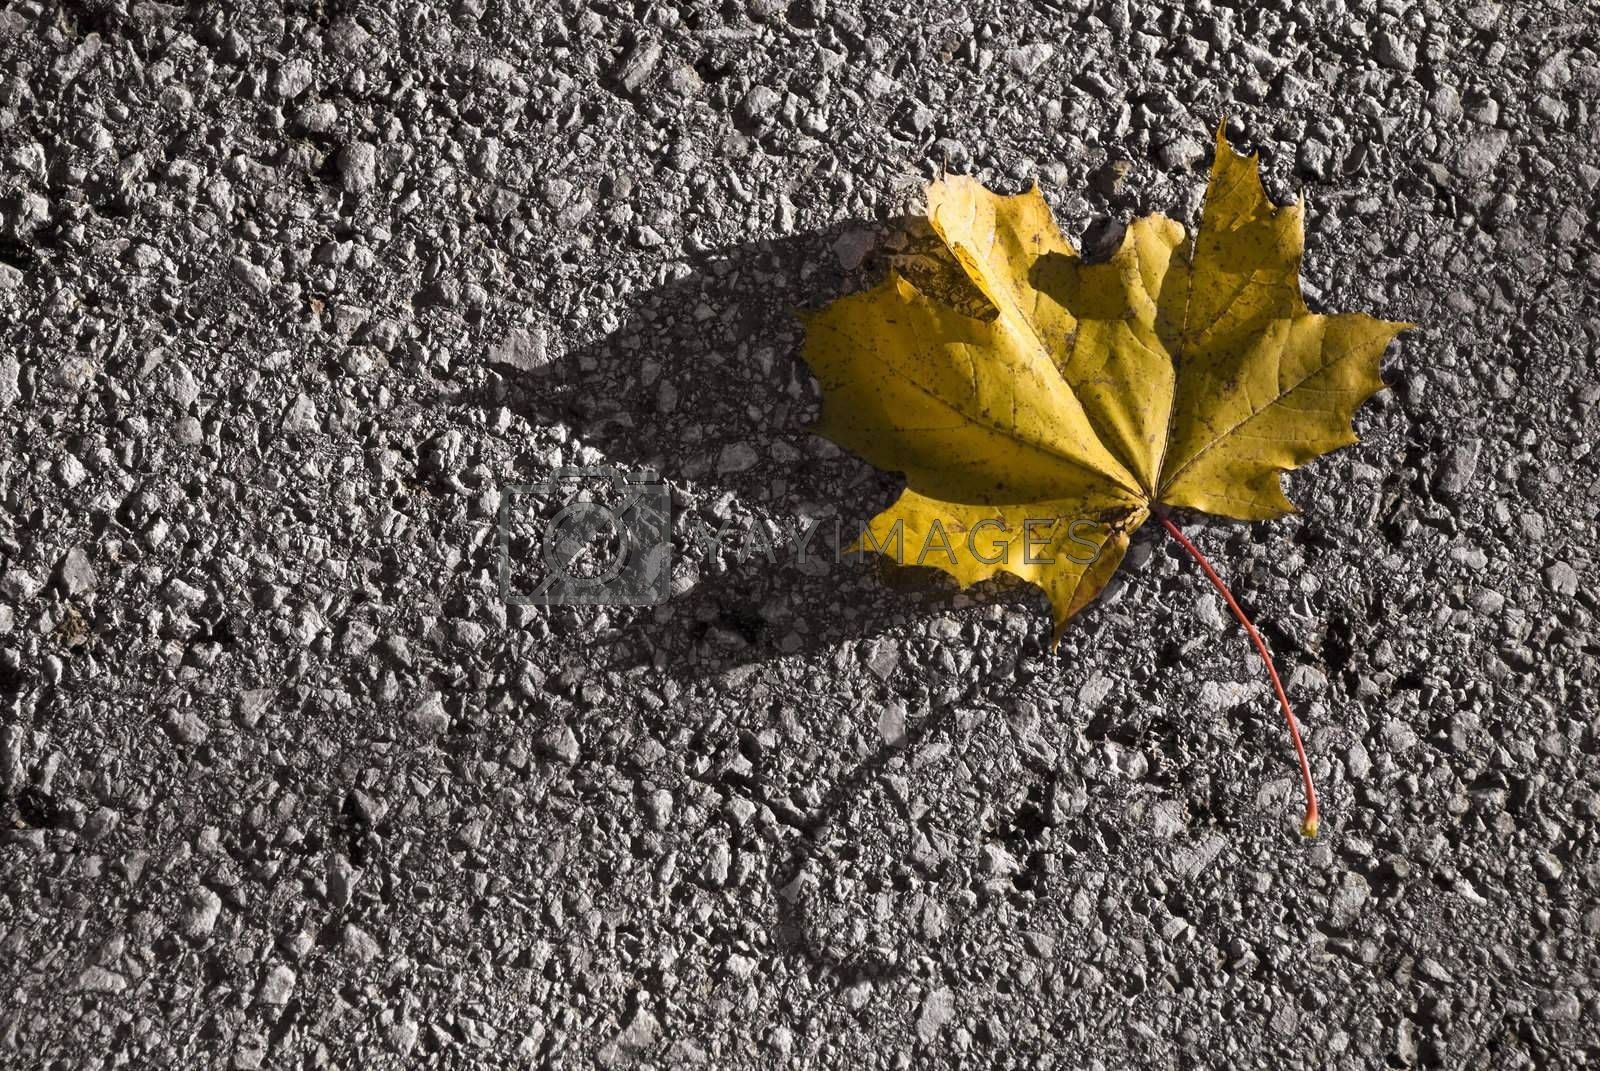 Single yellow maple leaf lying on the street. Autumn image.